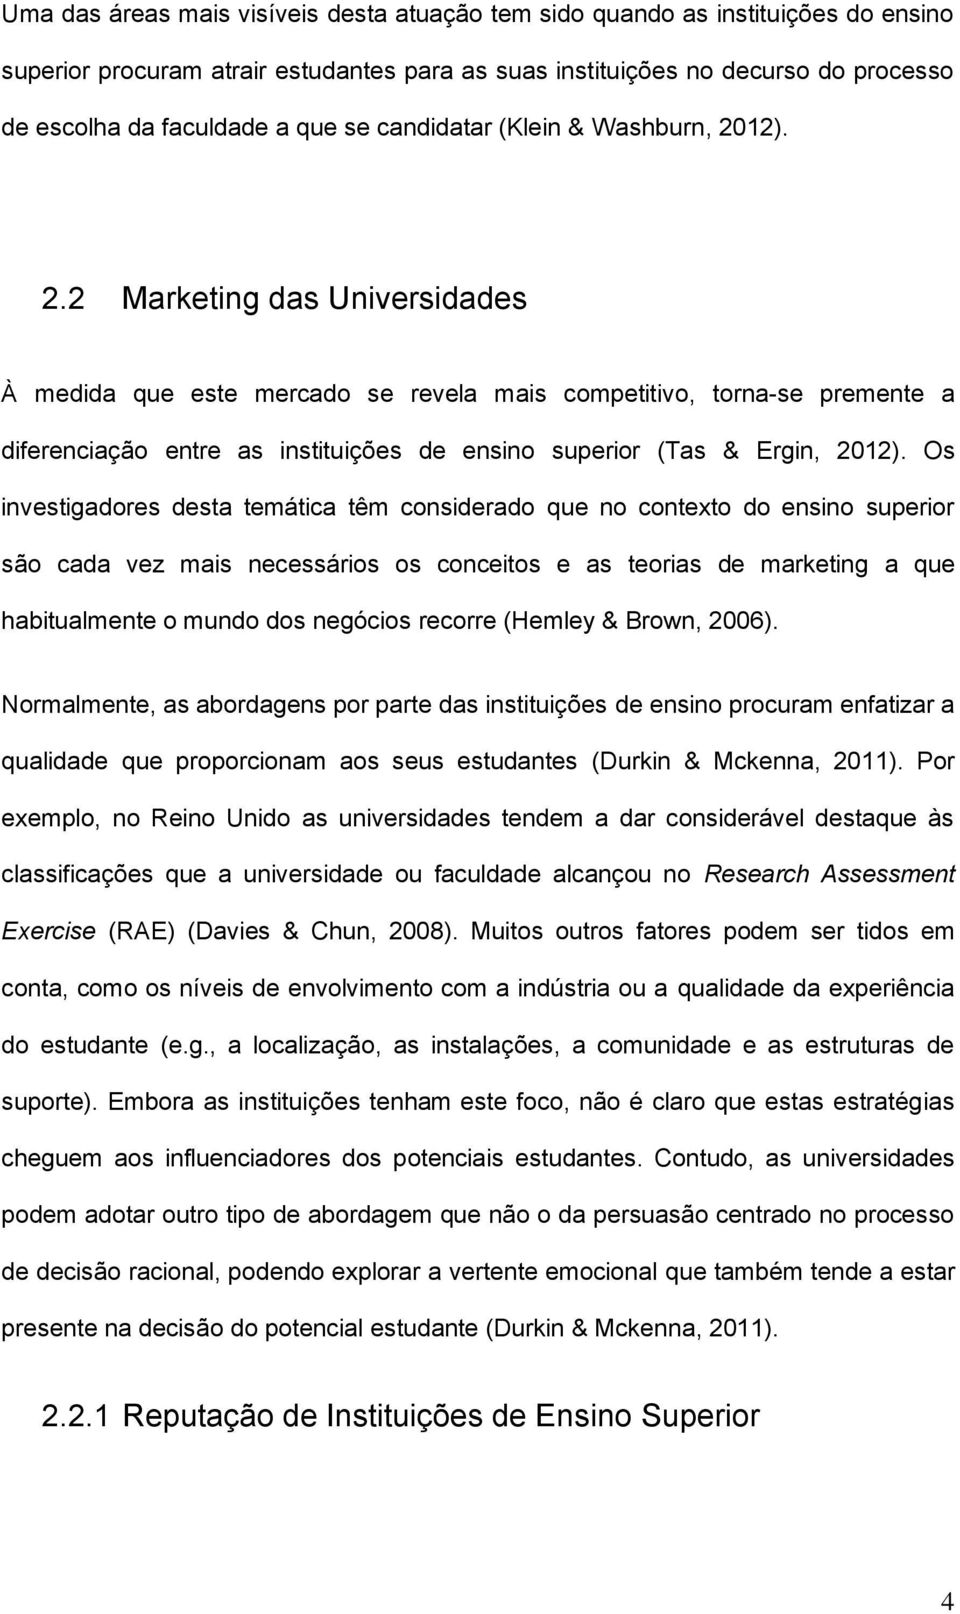 12). 2.2 Marketing das Universidades À medida que este mercado se revela mais competitivo, torna-se premente a diferenciação entre as instituições de ensino superior (Tas & Ergin, 2012).